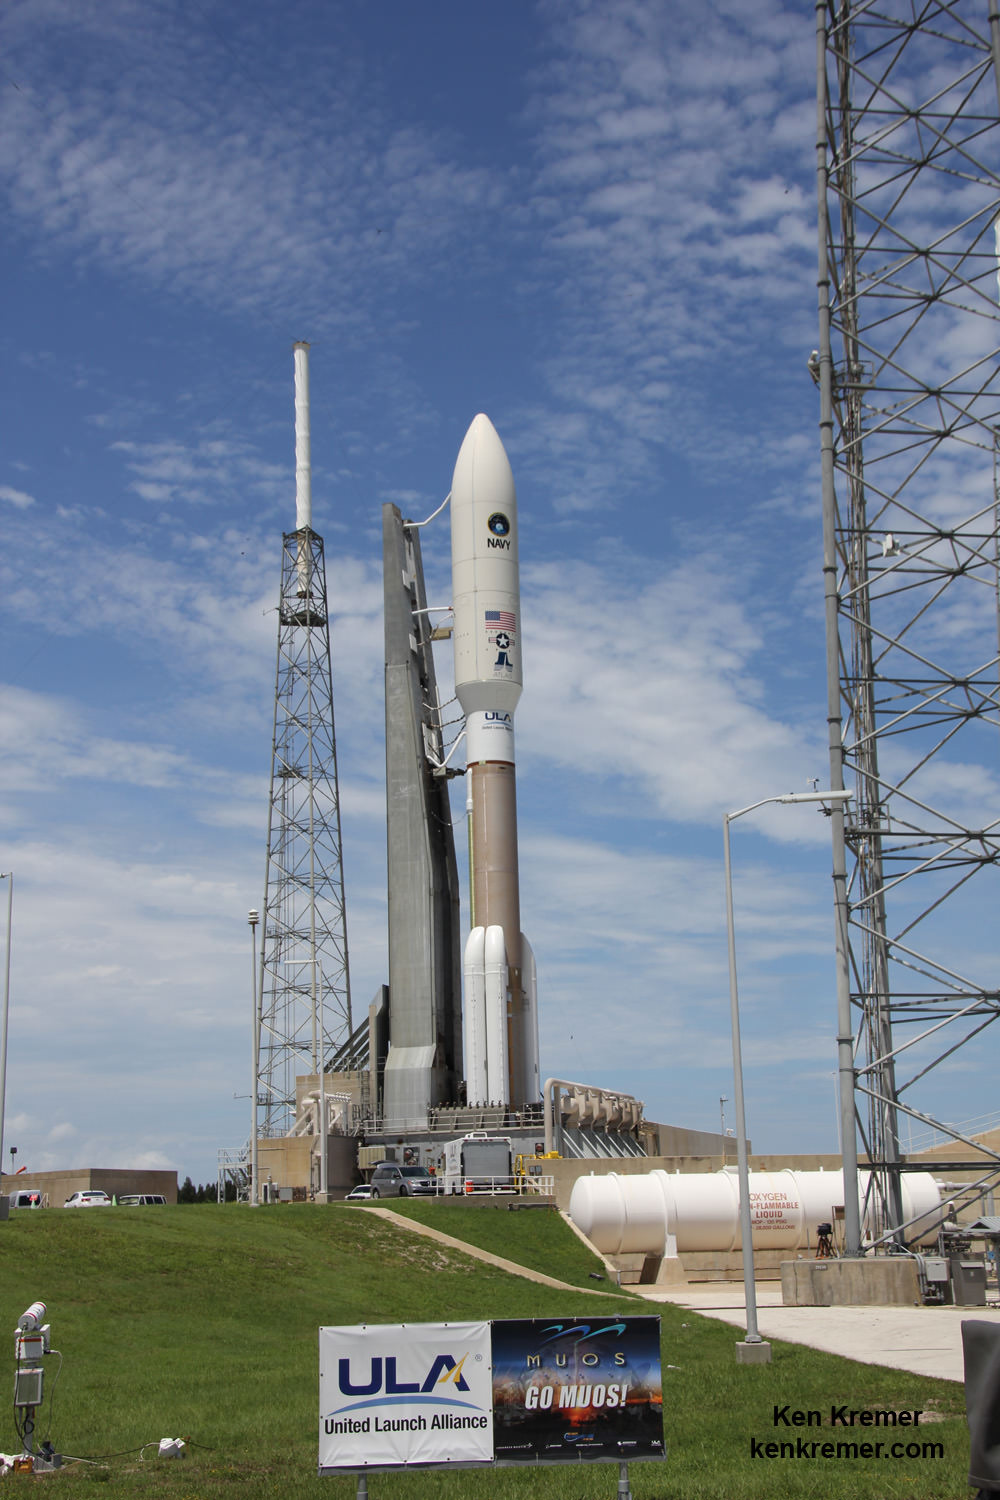 MUOS-4 US Navy communications satellite and Atlas V rocket at pad 41 at Cape Canaveral Air Force Station, FL for launch on Sept. 2, 2015 at 5:59 a.m. EDT. Credit: Ken Kremer/kenkremer.com